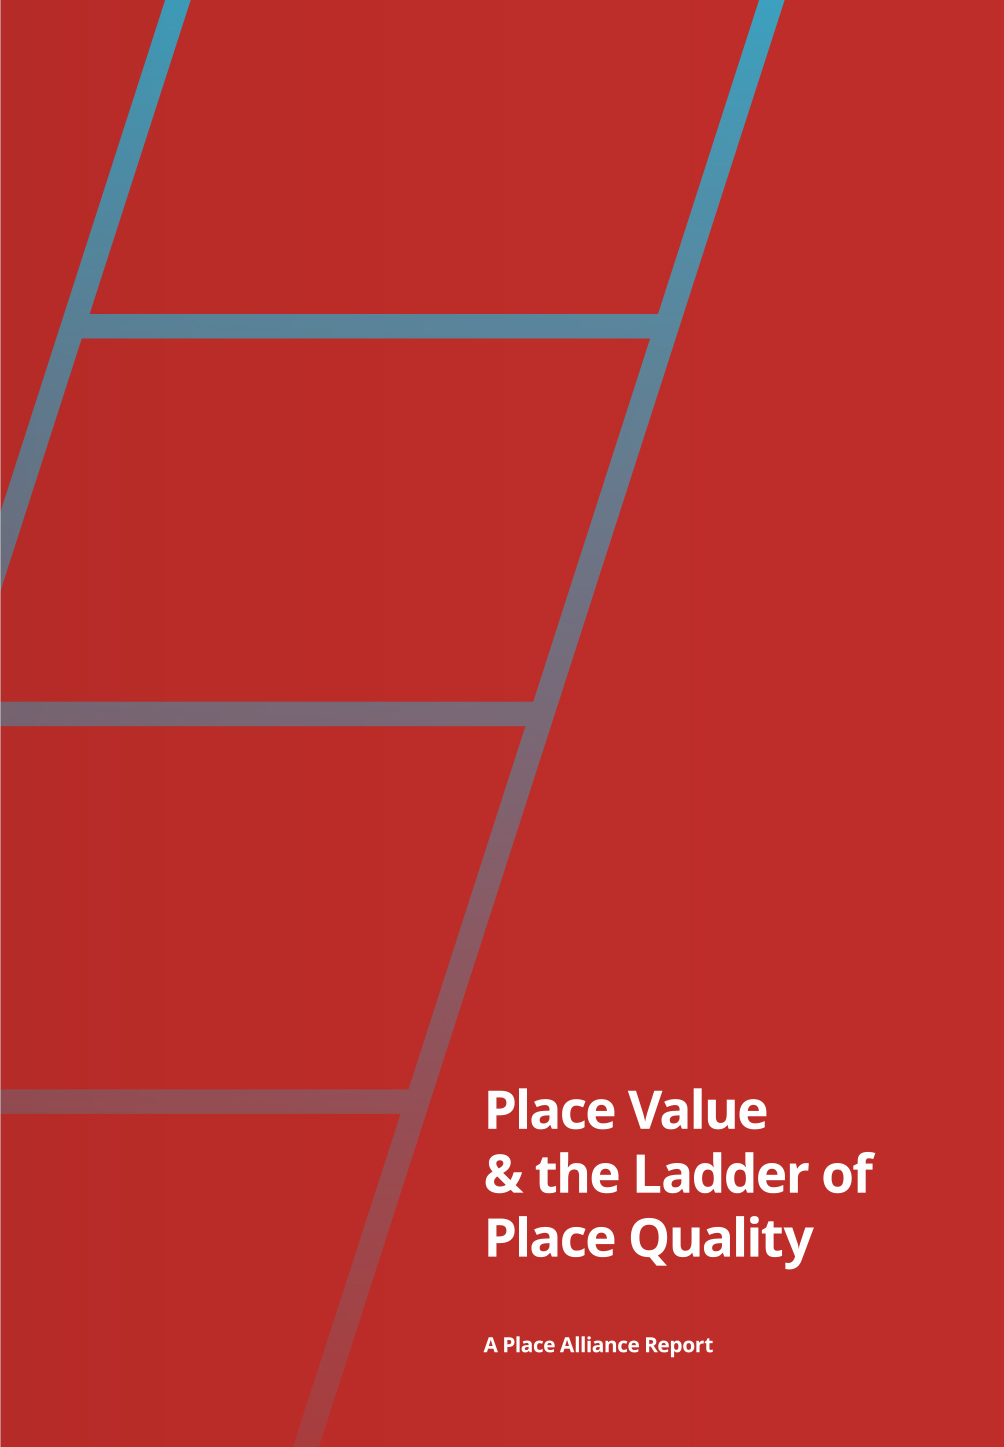 Place Value and the Ladder of Place Quality